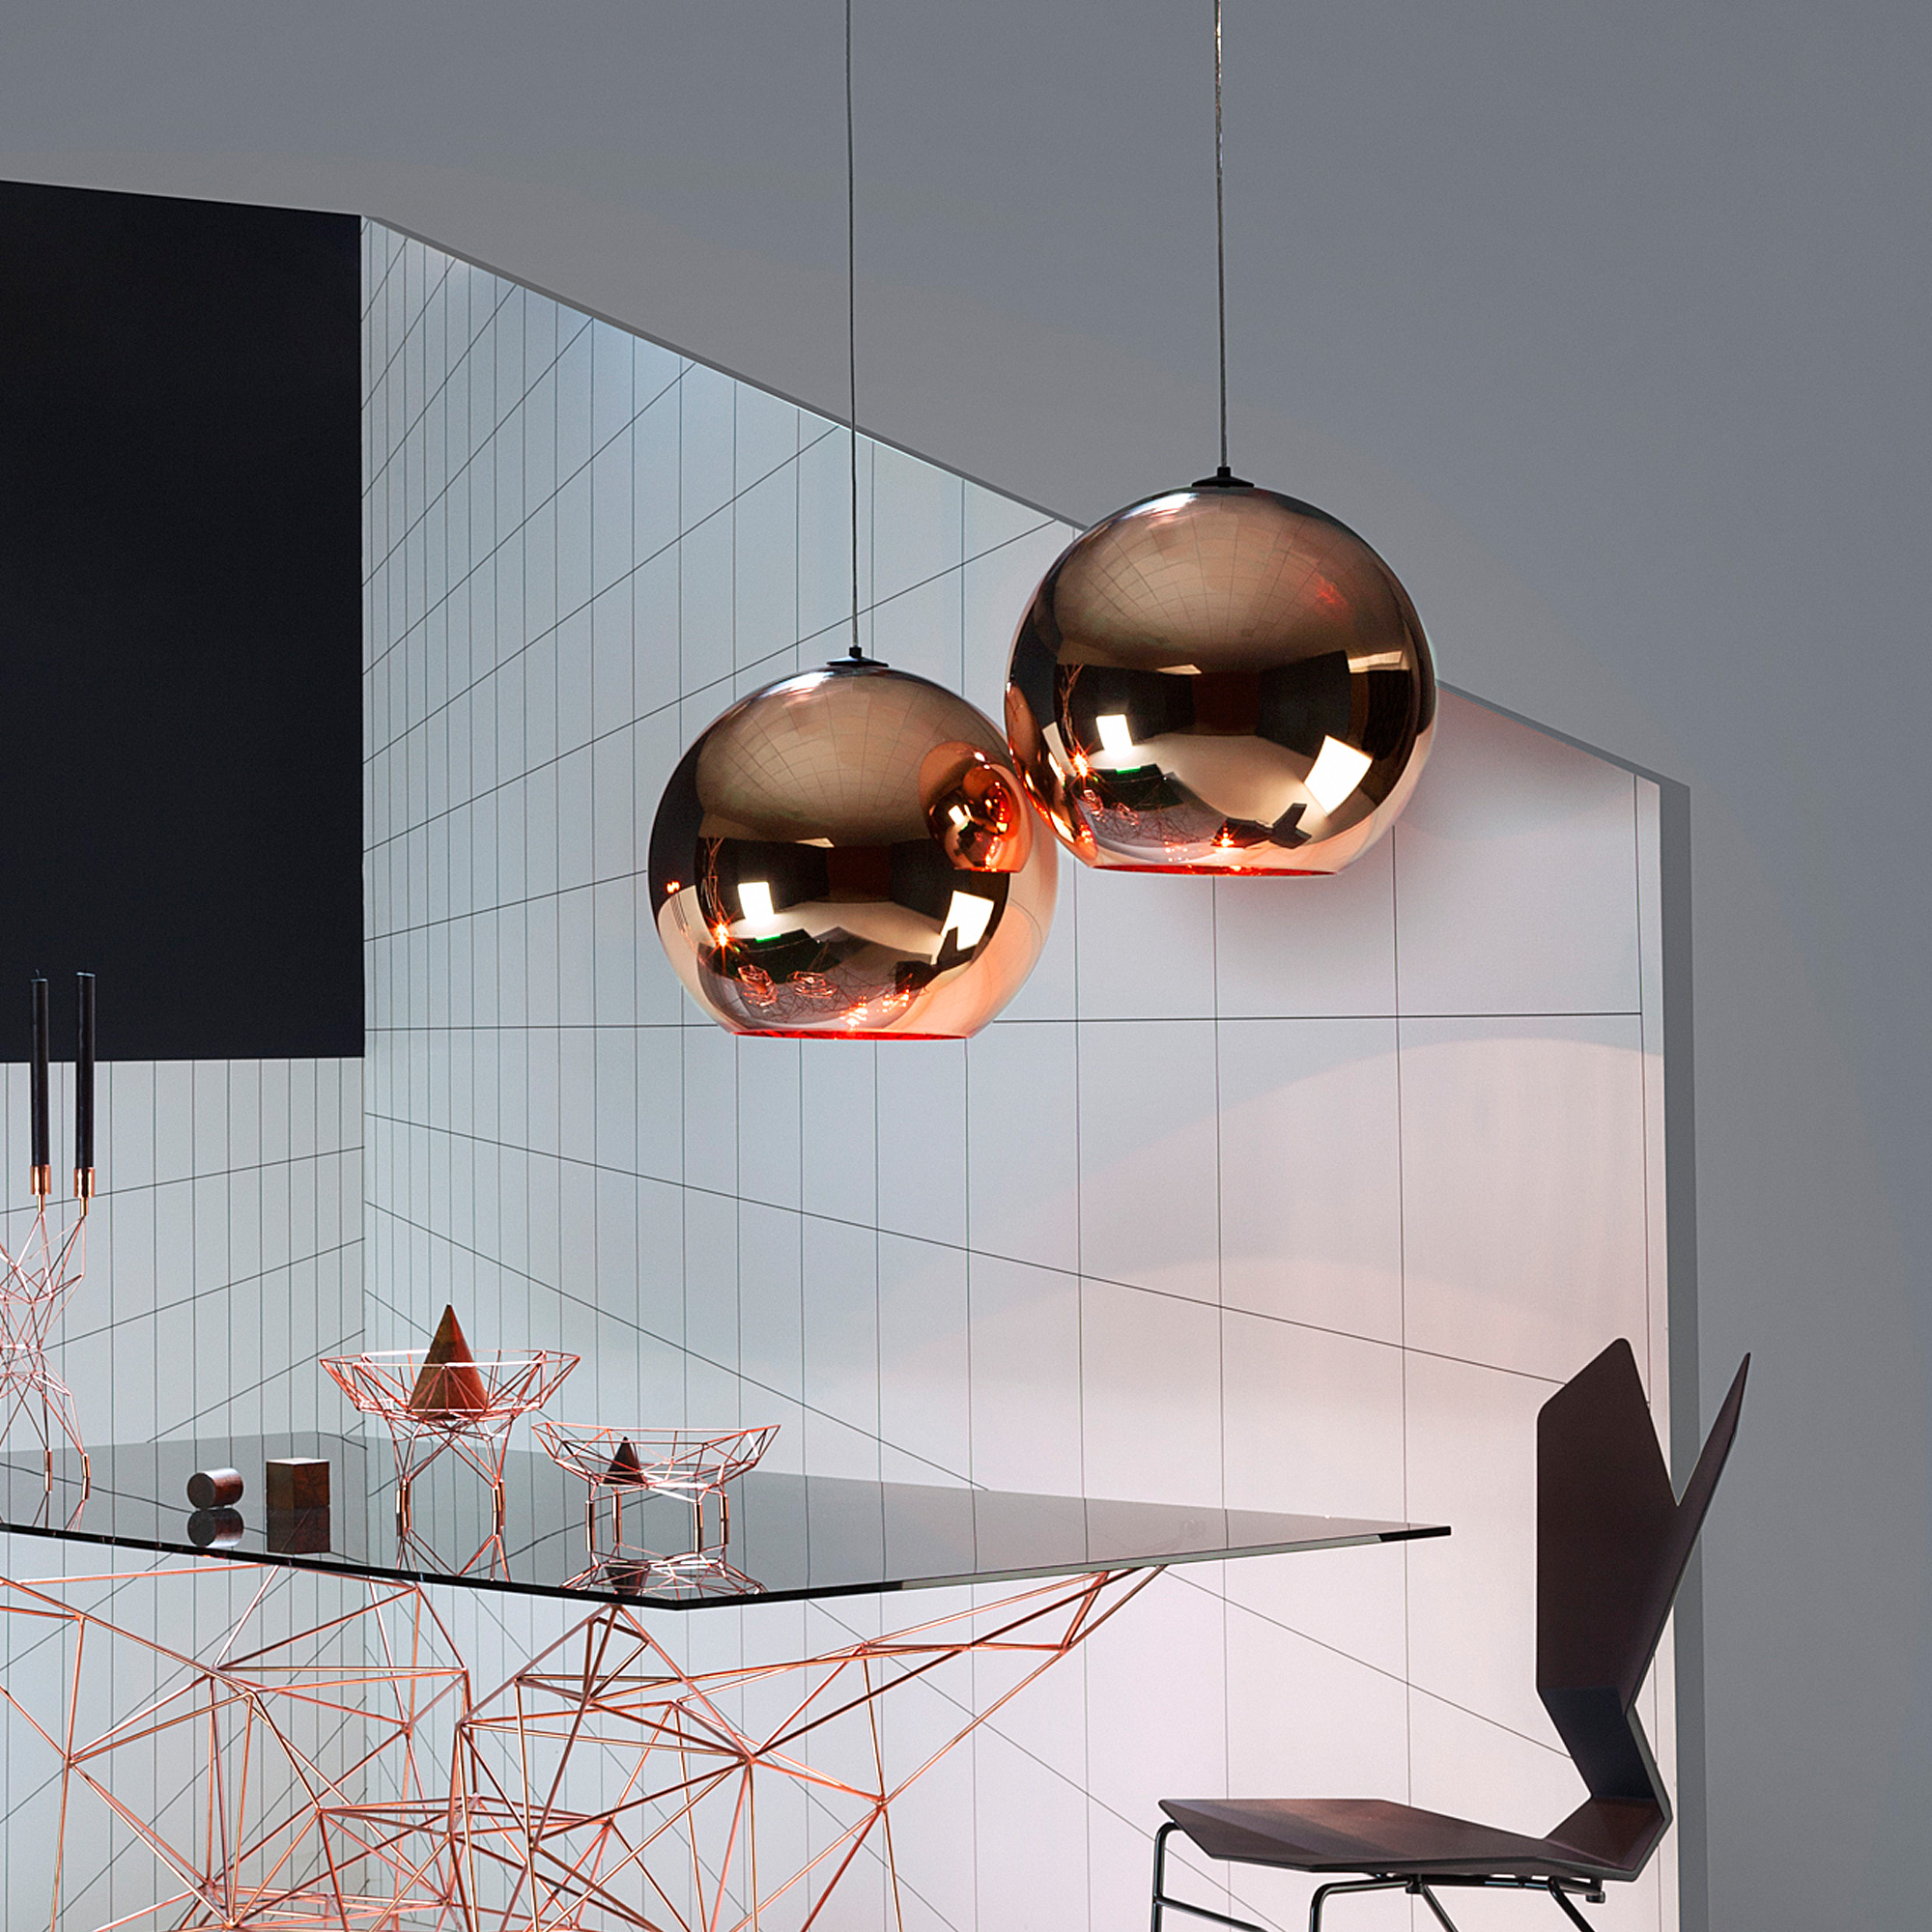 tom dixon copper pendelleuchte 25 mss25 peum reuter onlineshop. Black Bedroom Furniture Sets. Home Design Ideas